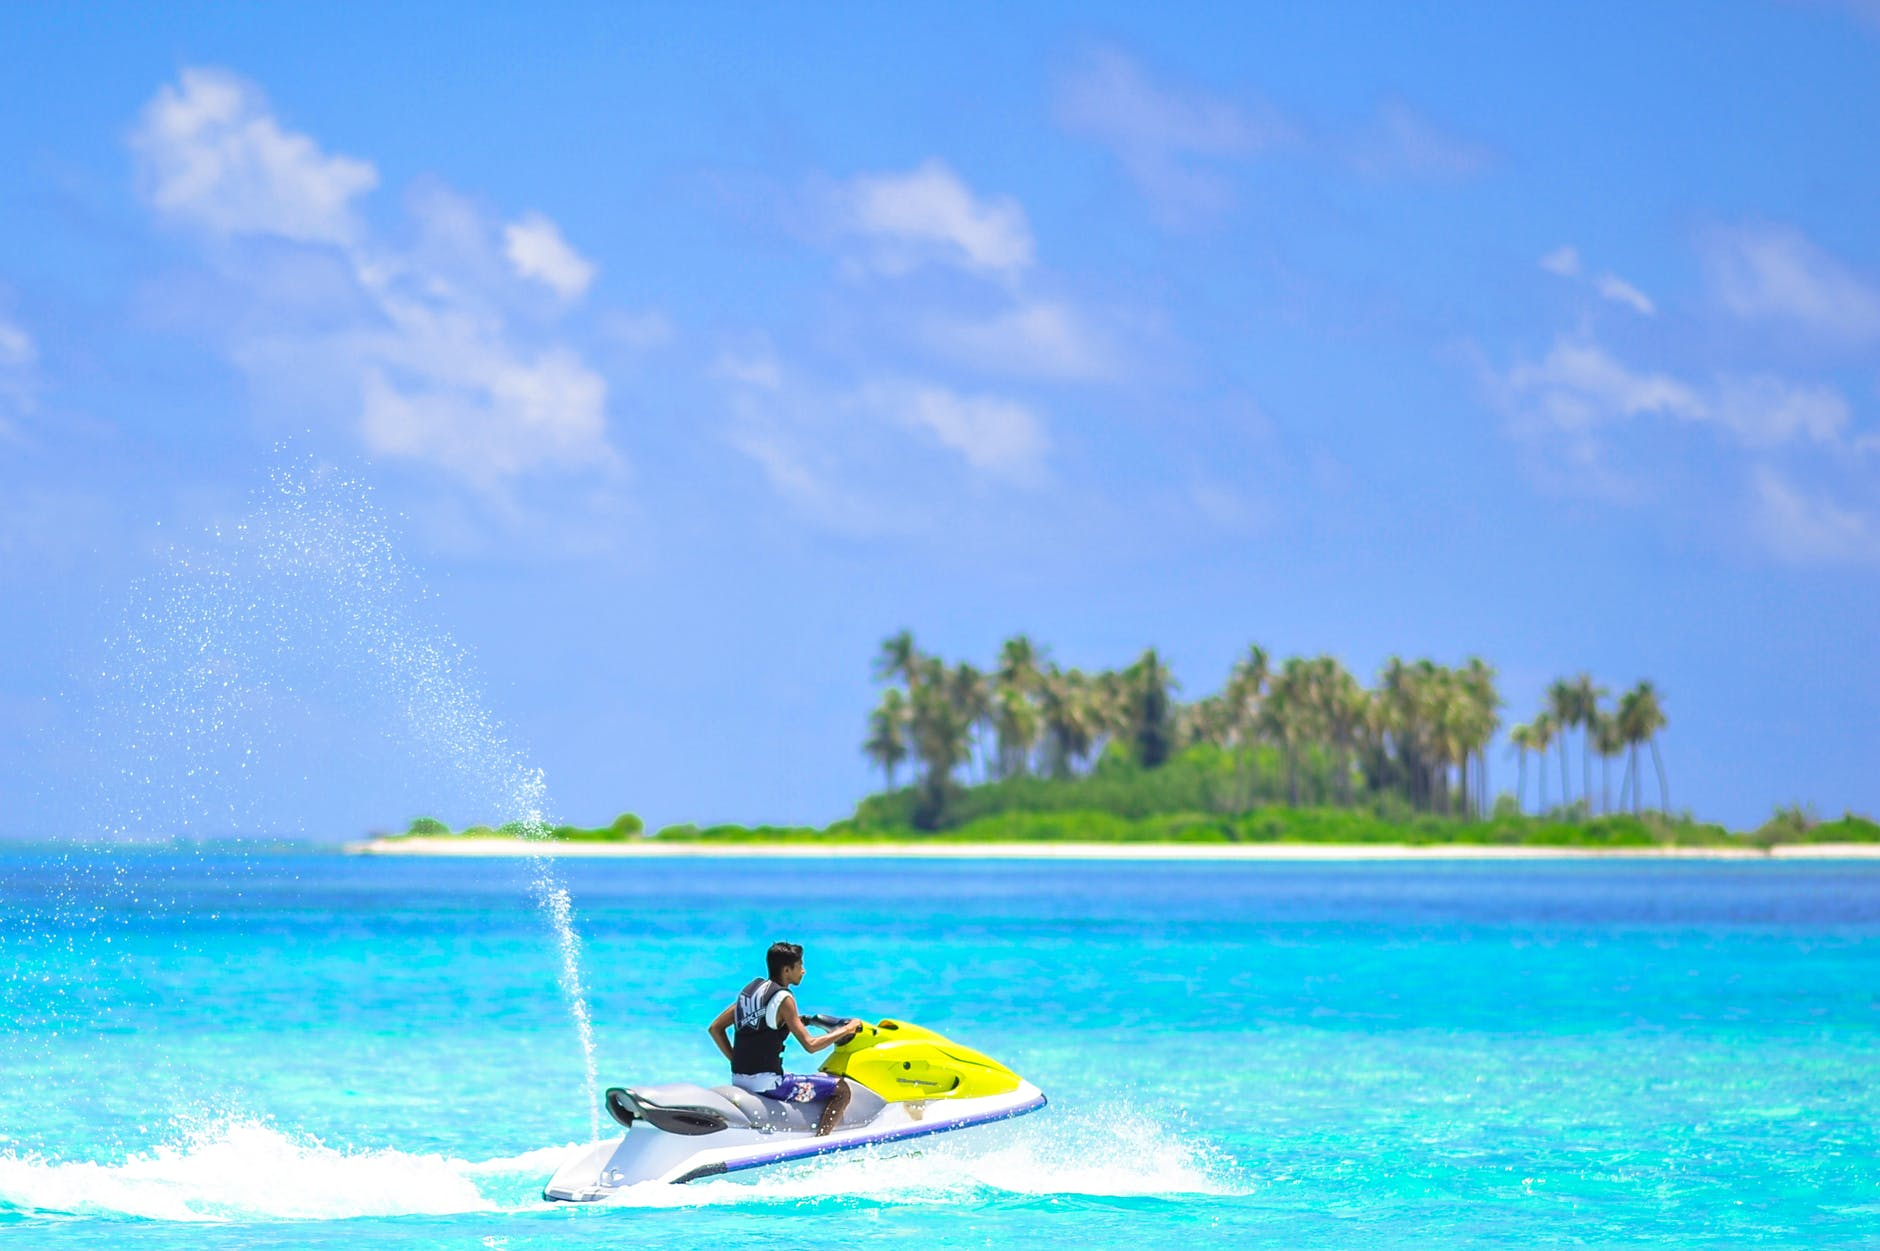 Step Up the Fun with Water Sports